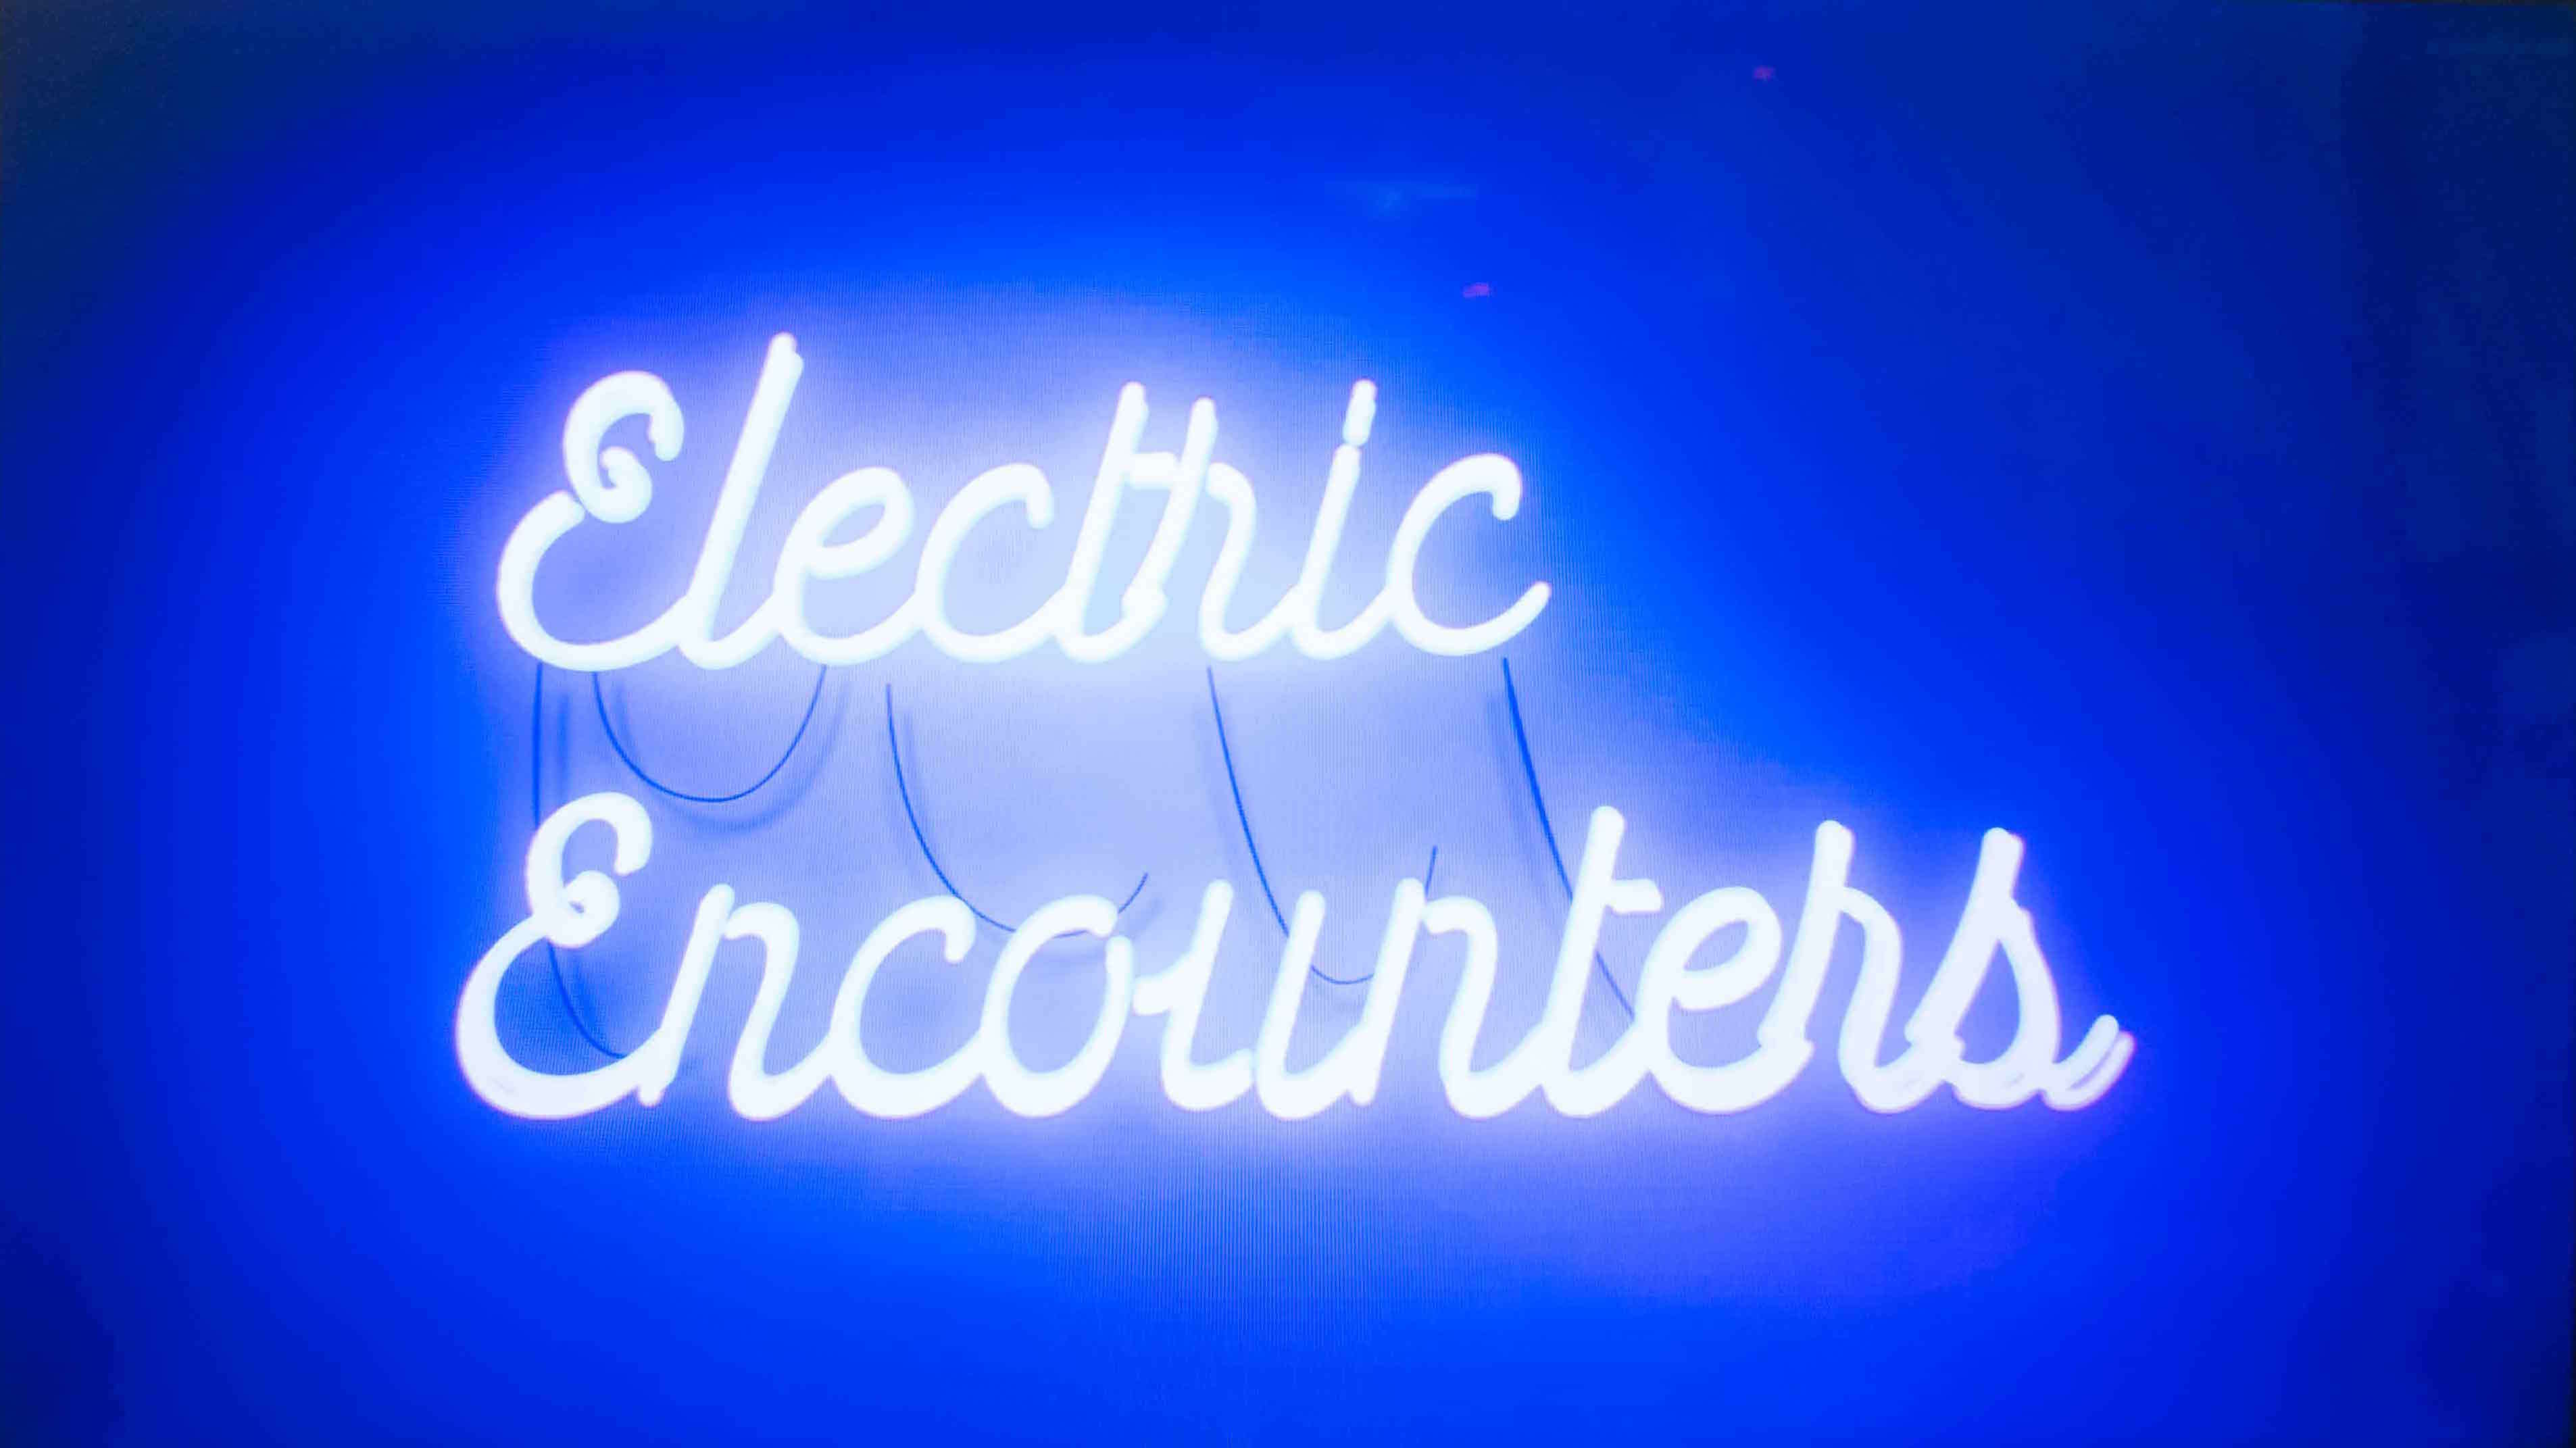 Electric Encounters neon sign